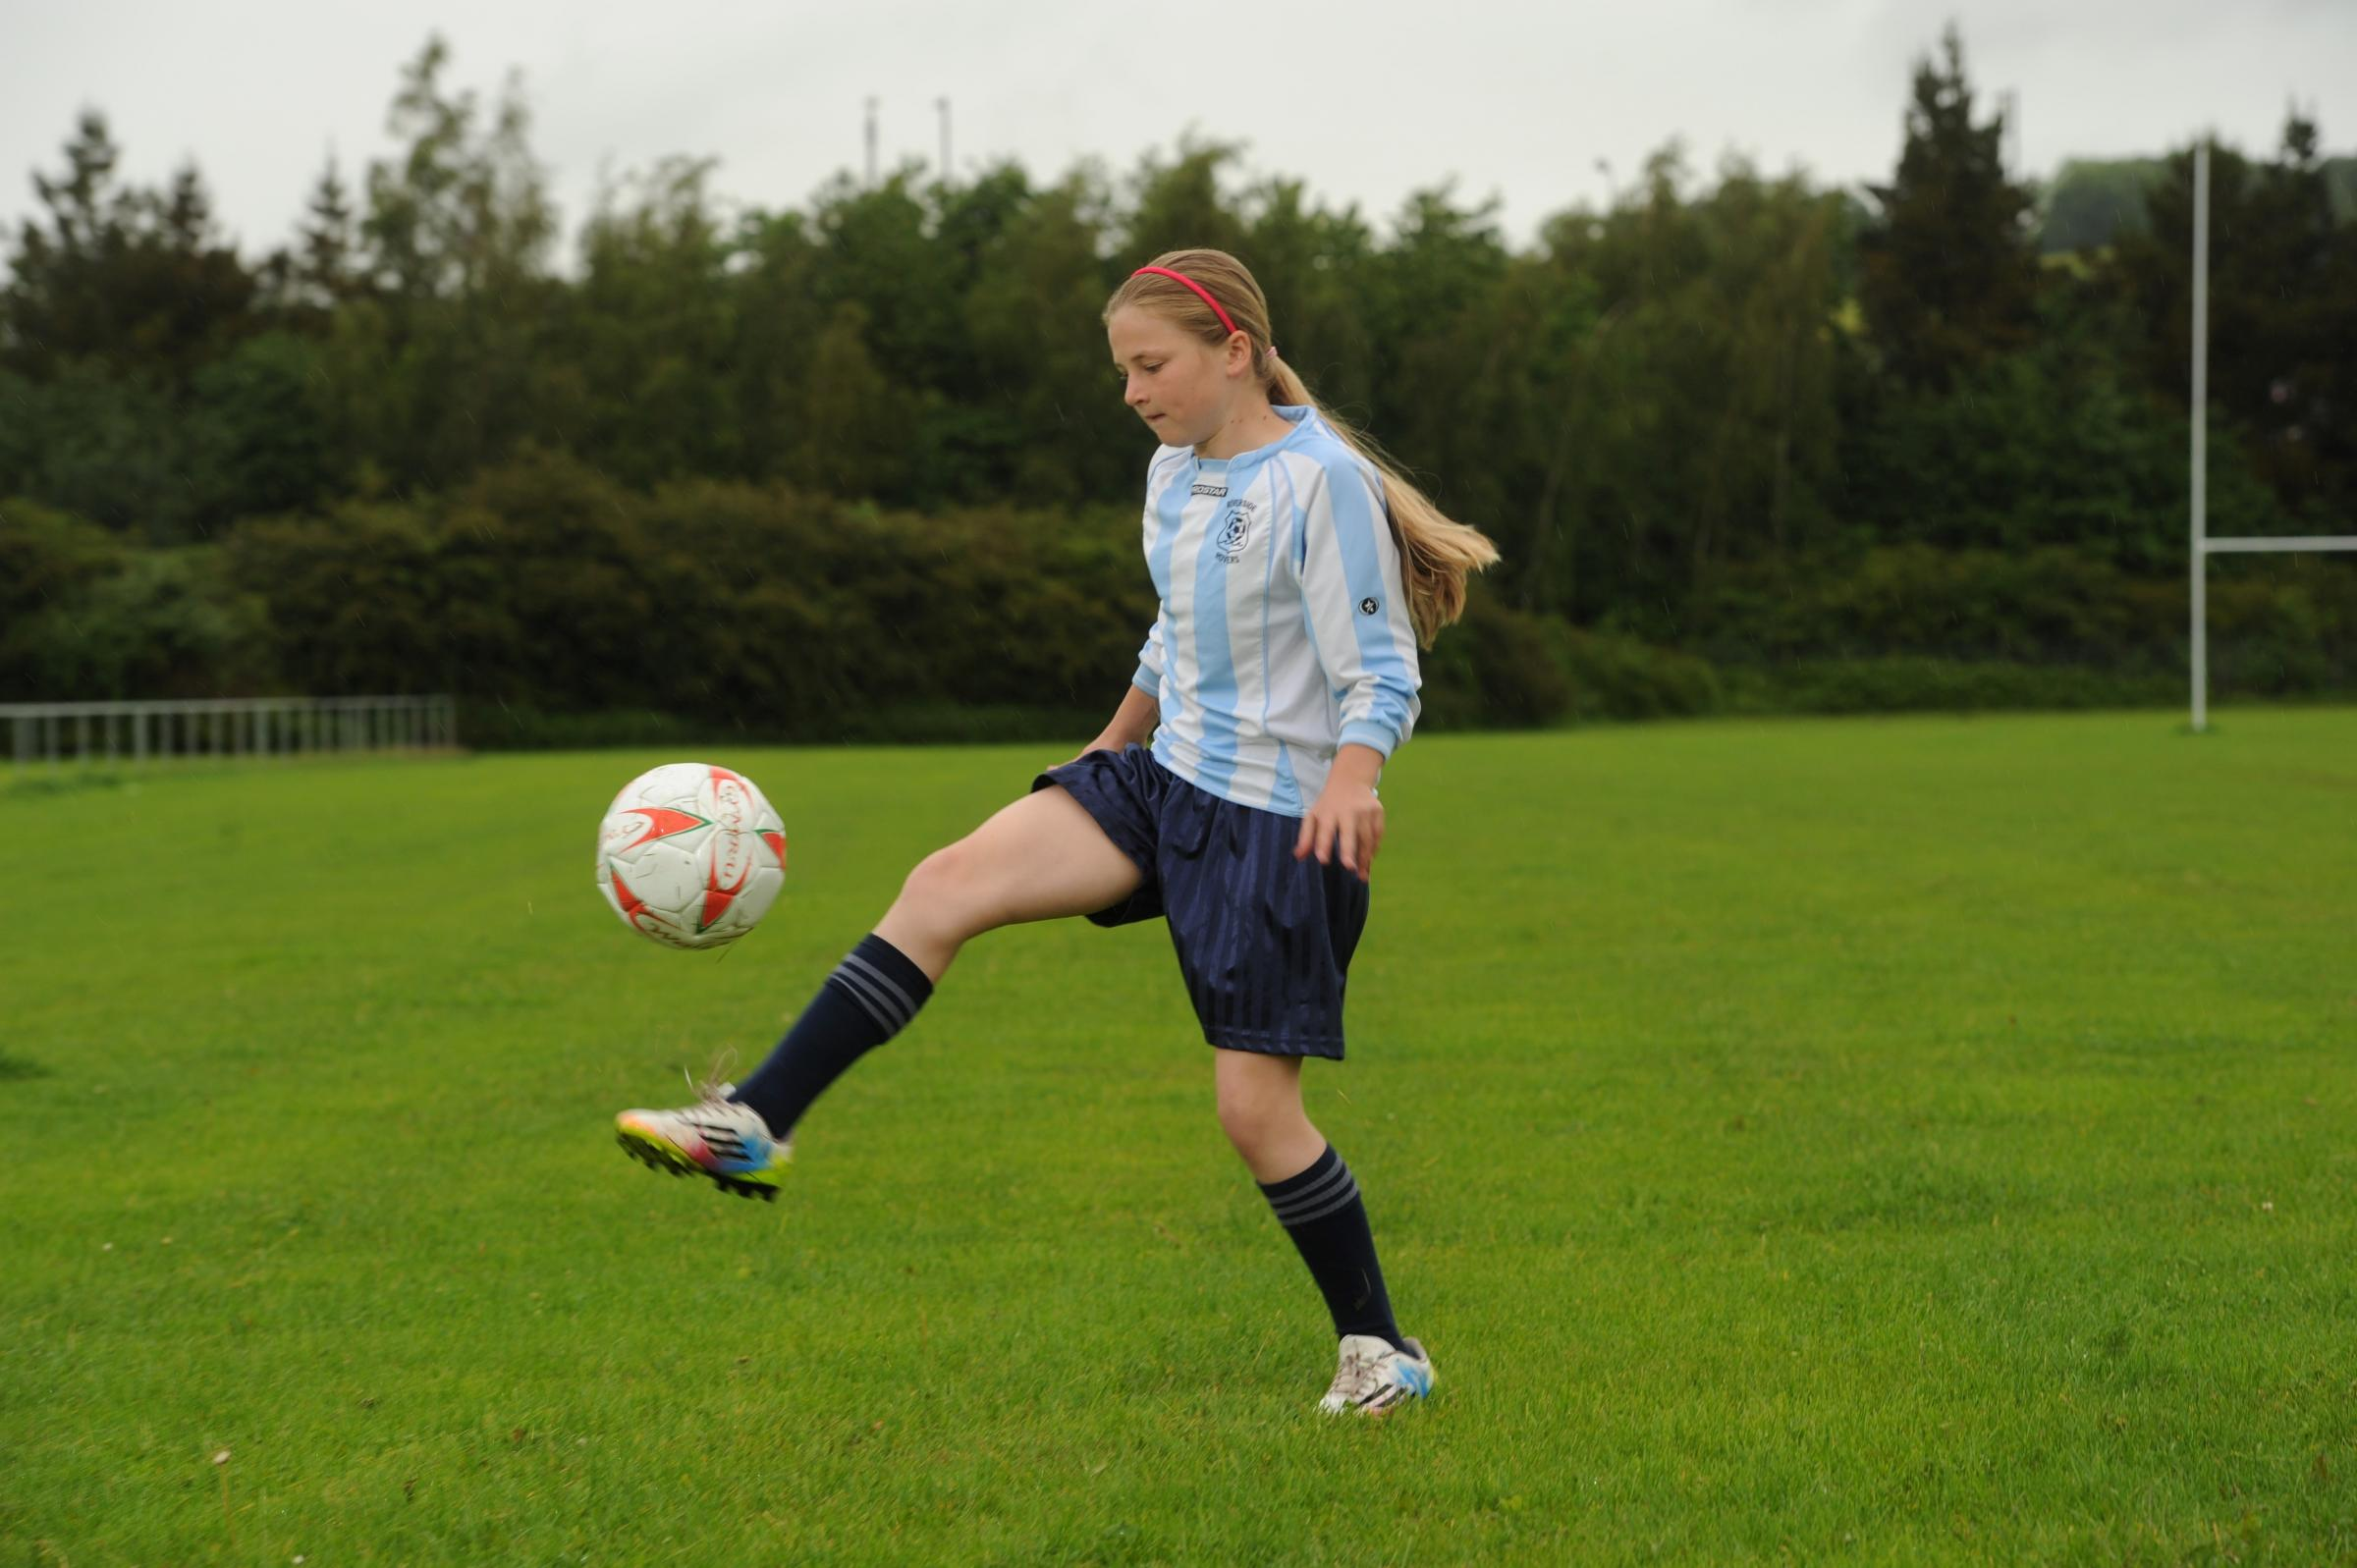 Footballing Newport girl can keep playing in mixed side